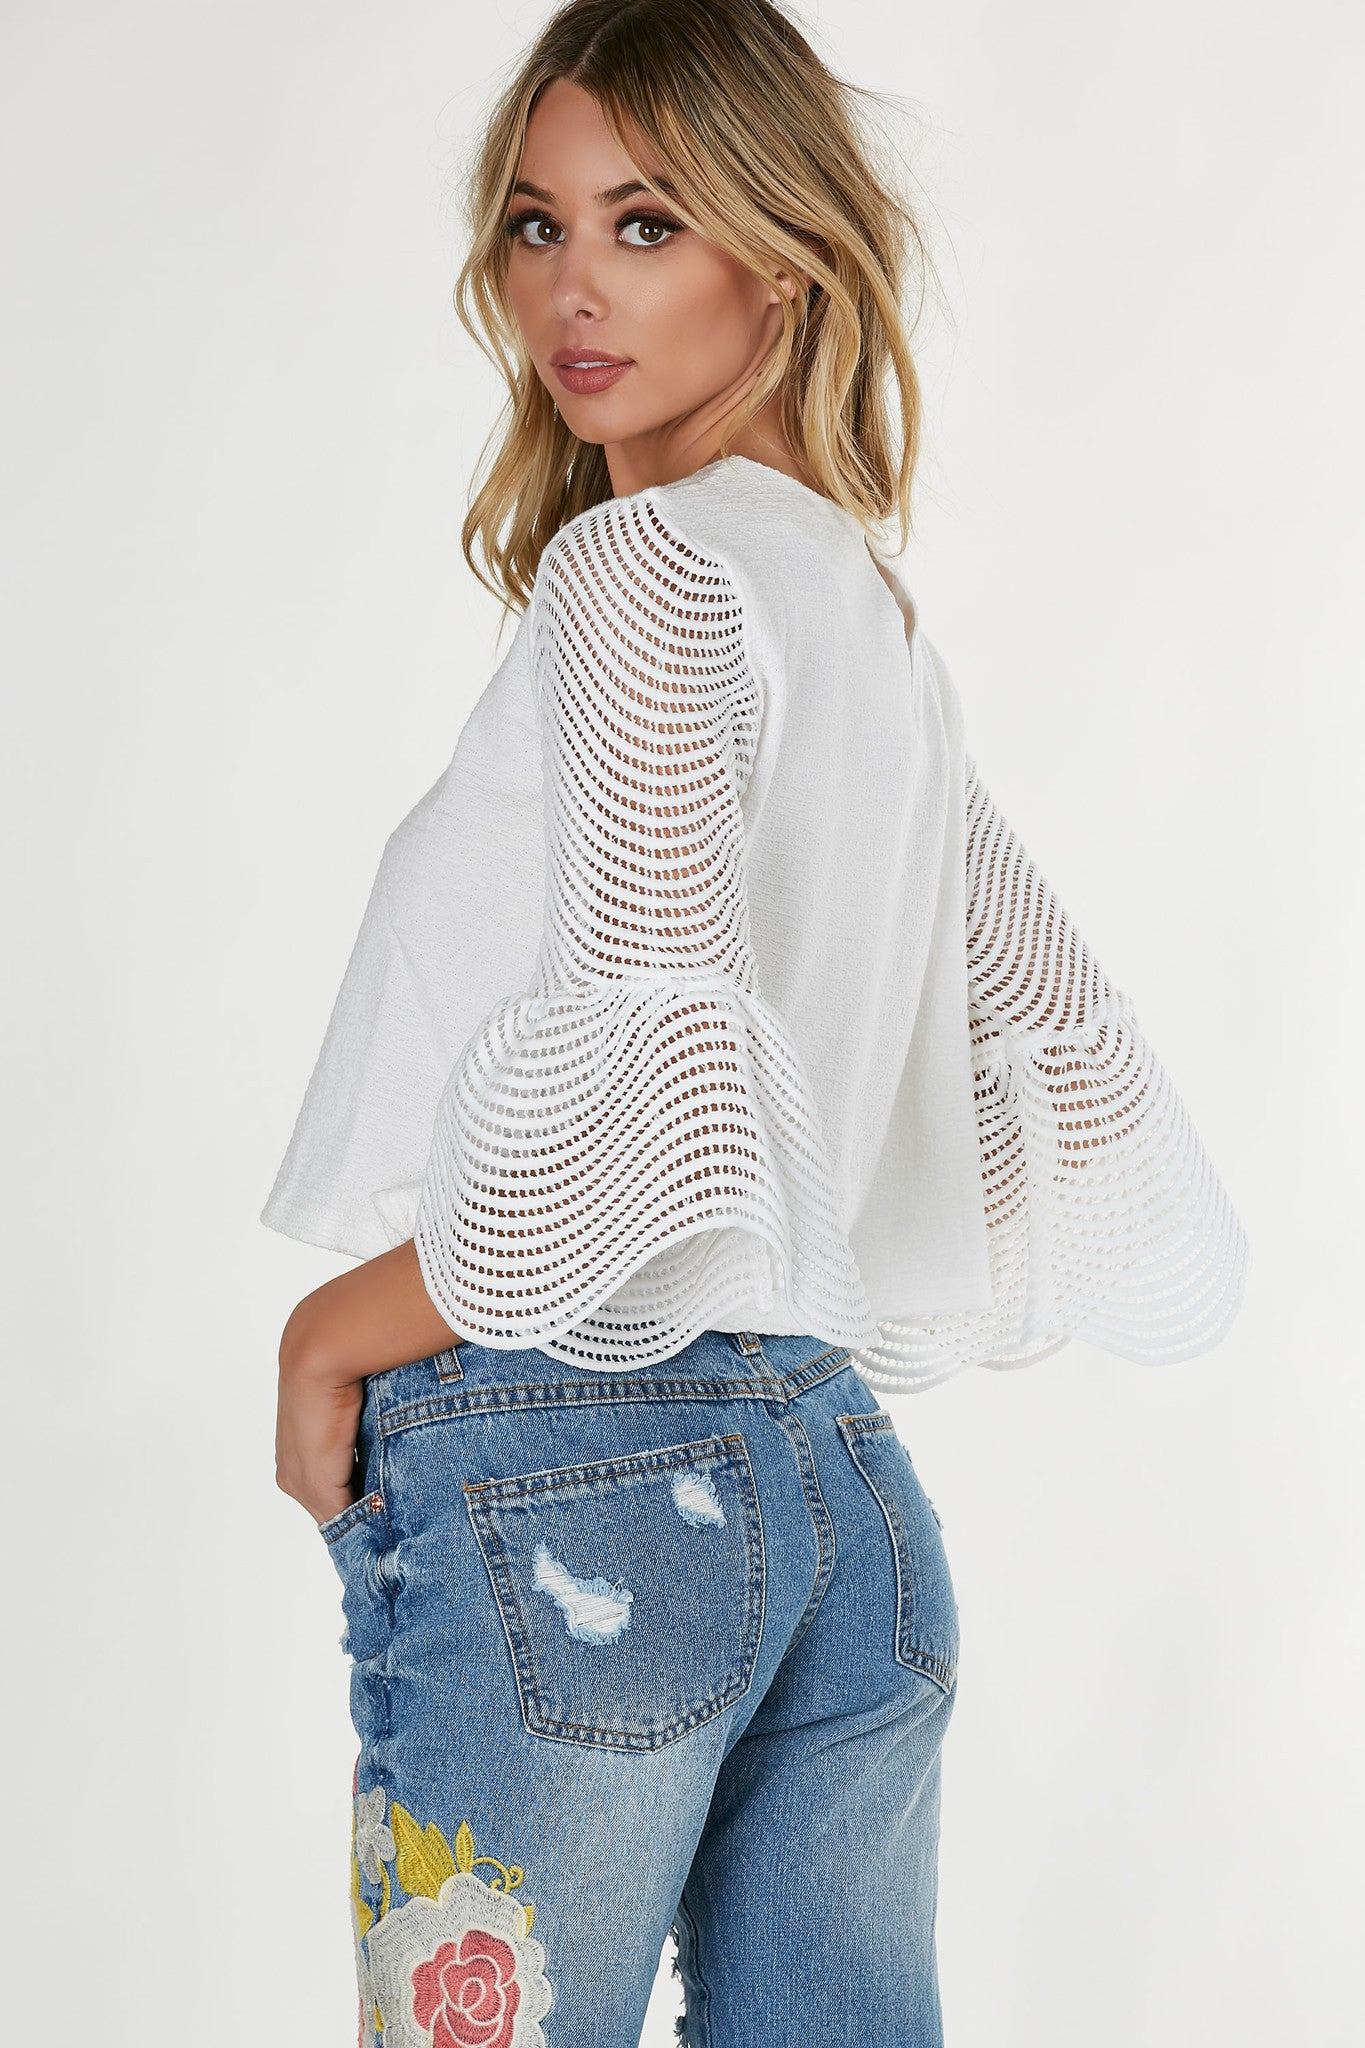 Boxy oversized top with intricate crochet bell sleeves. Crew neck wth straight hem all around.